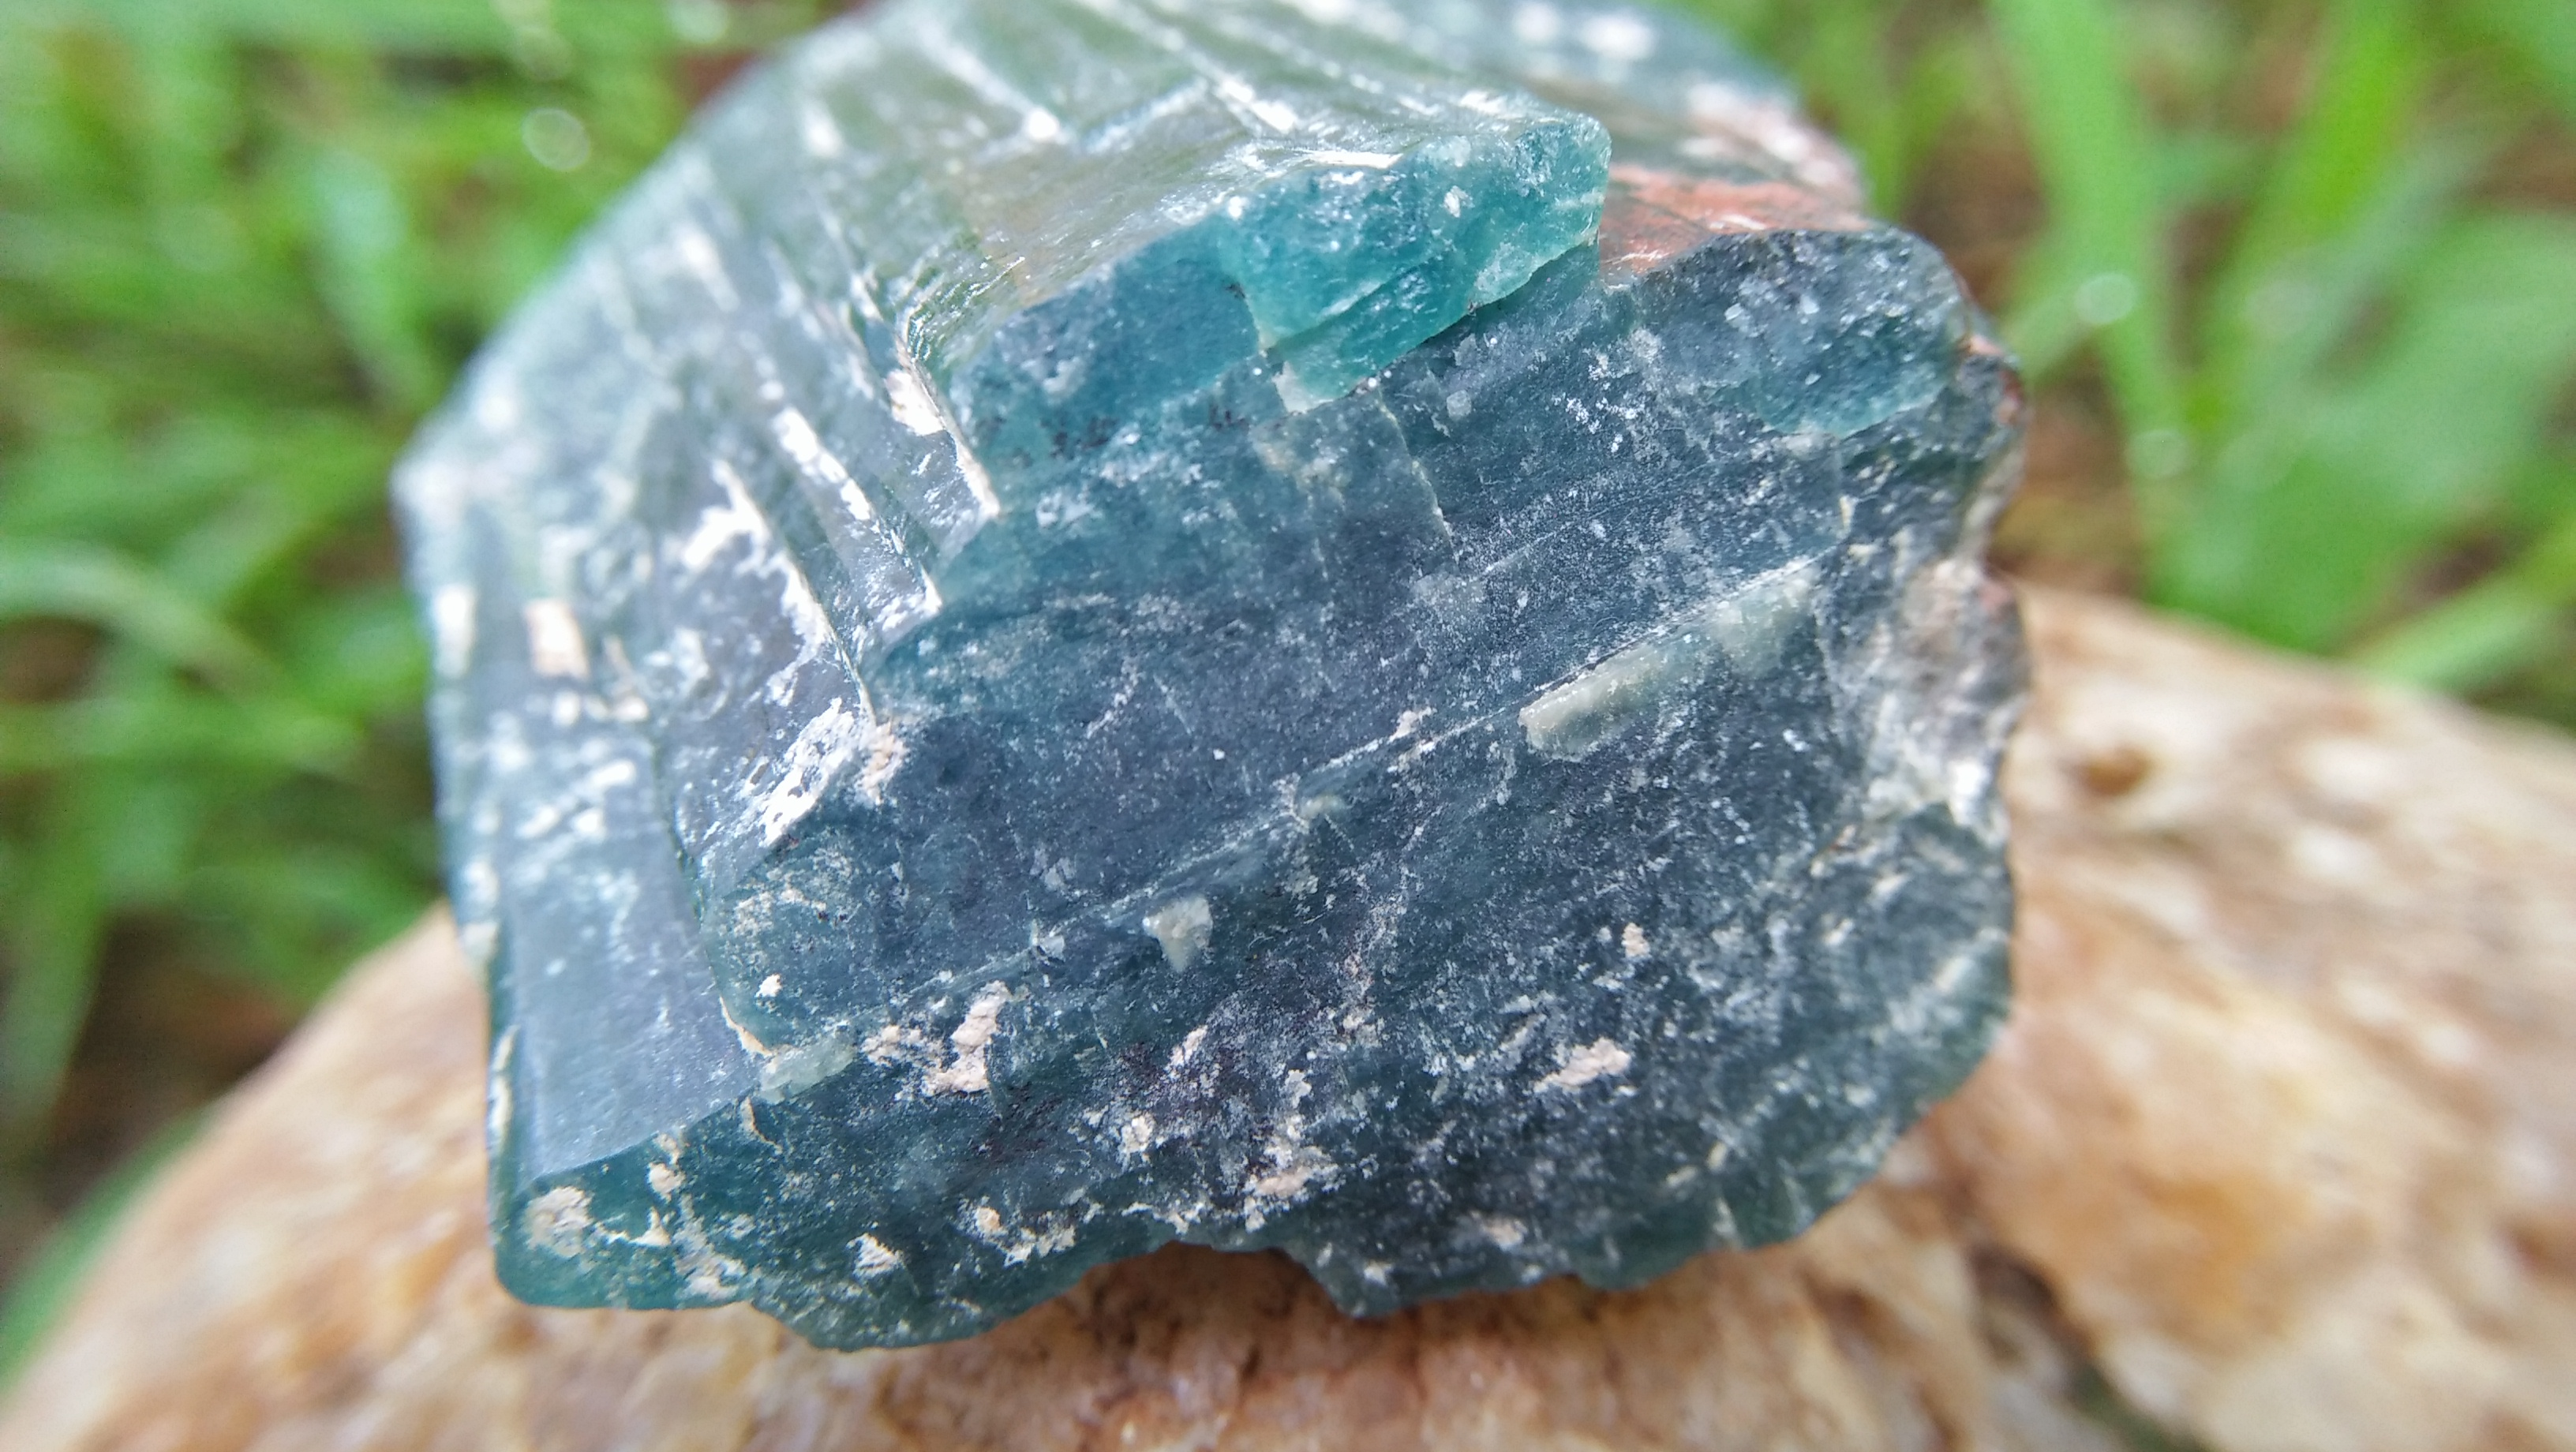 Grandidierite is an extremely rare mineral and gem that was first discovered in 1902 in southern Madagascar. Optical properties: Biaxial (-) Category: Nesosilicate Formula: (Mg,Fe2+)Al3(BO3)(SiO4)O2 Crystal system: Orthorhombic Color: Bluish green Dispersion: strong Hardness: 7 to 7.5 Refractive Index: 1.590 to 1.623 Grandidierite have been found in only a few locations around the world, including Malawi, Namibia and Sri Lanka and few gem quality specimens have come mainly from Madagascar.